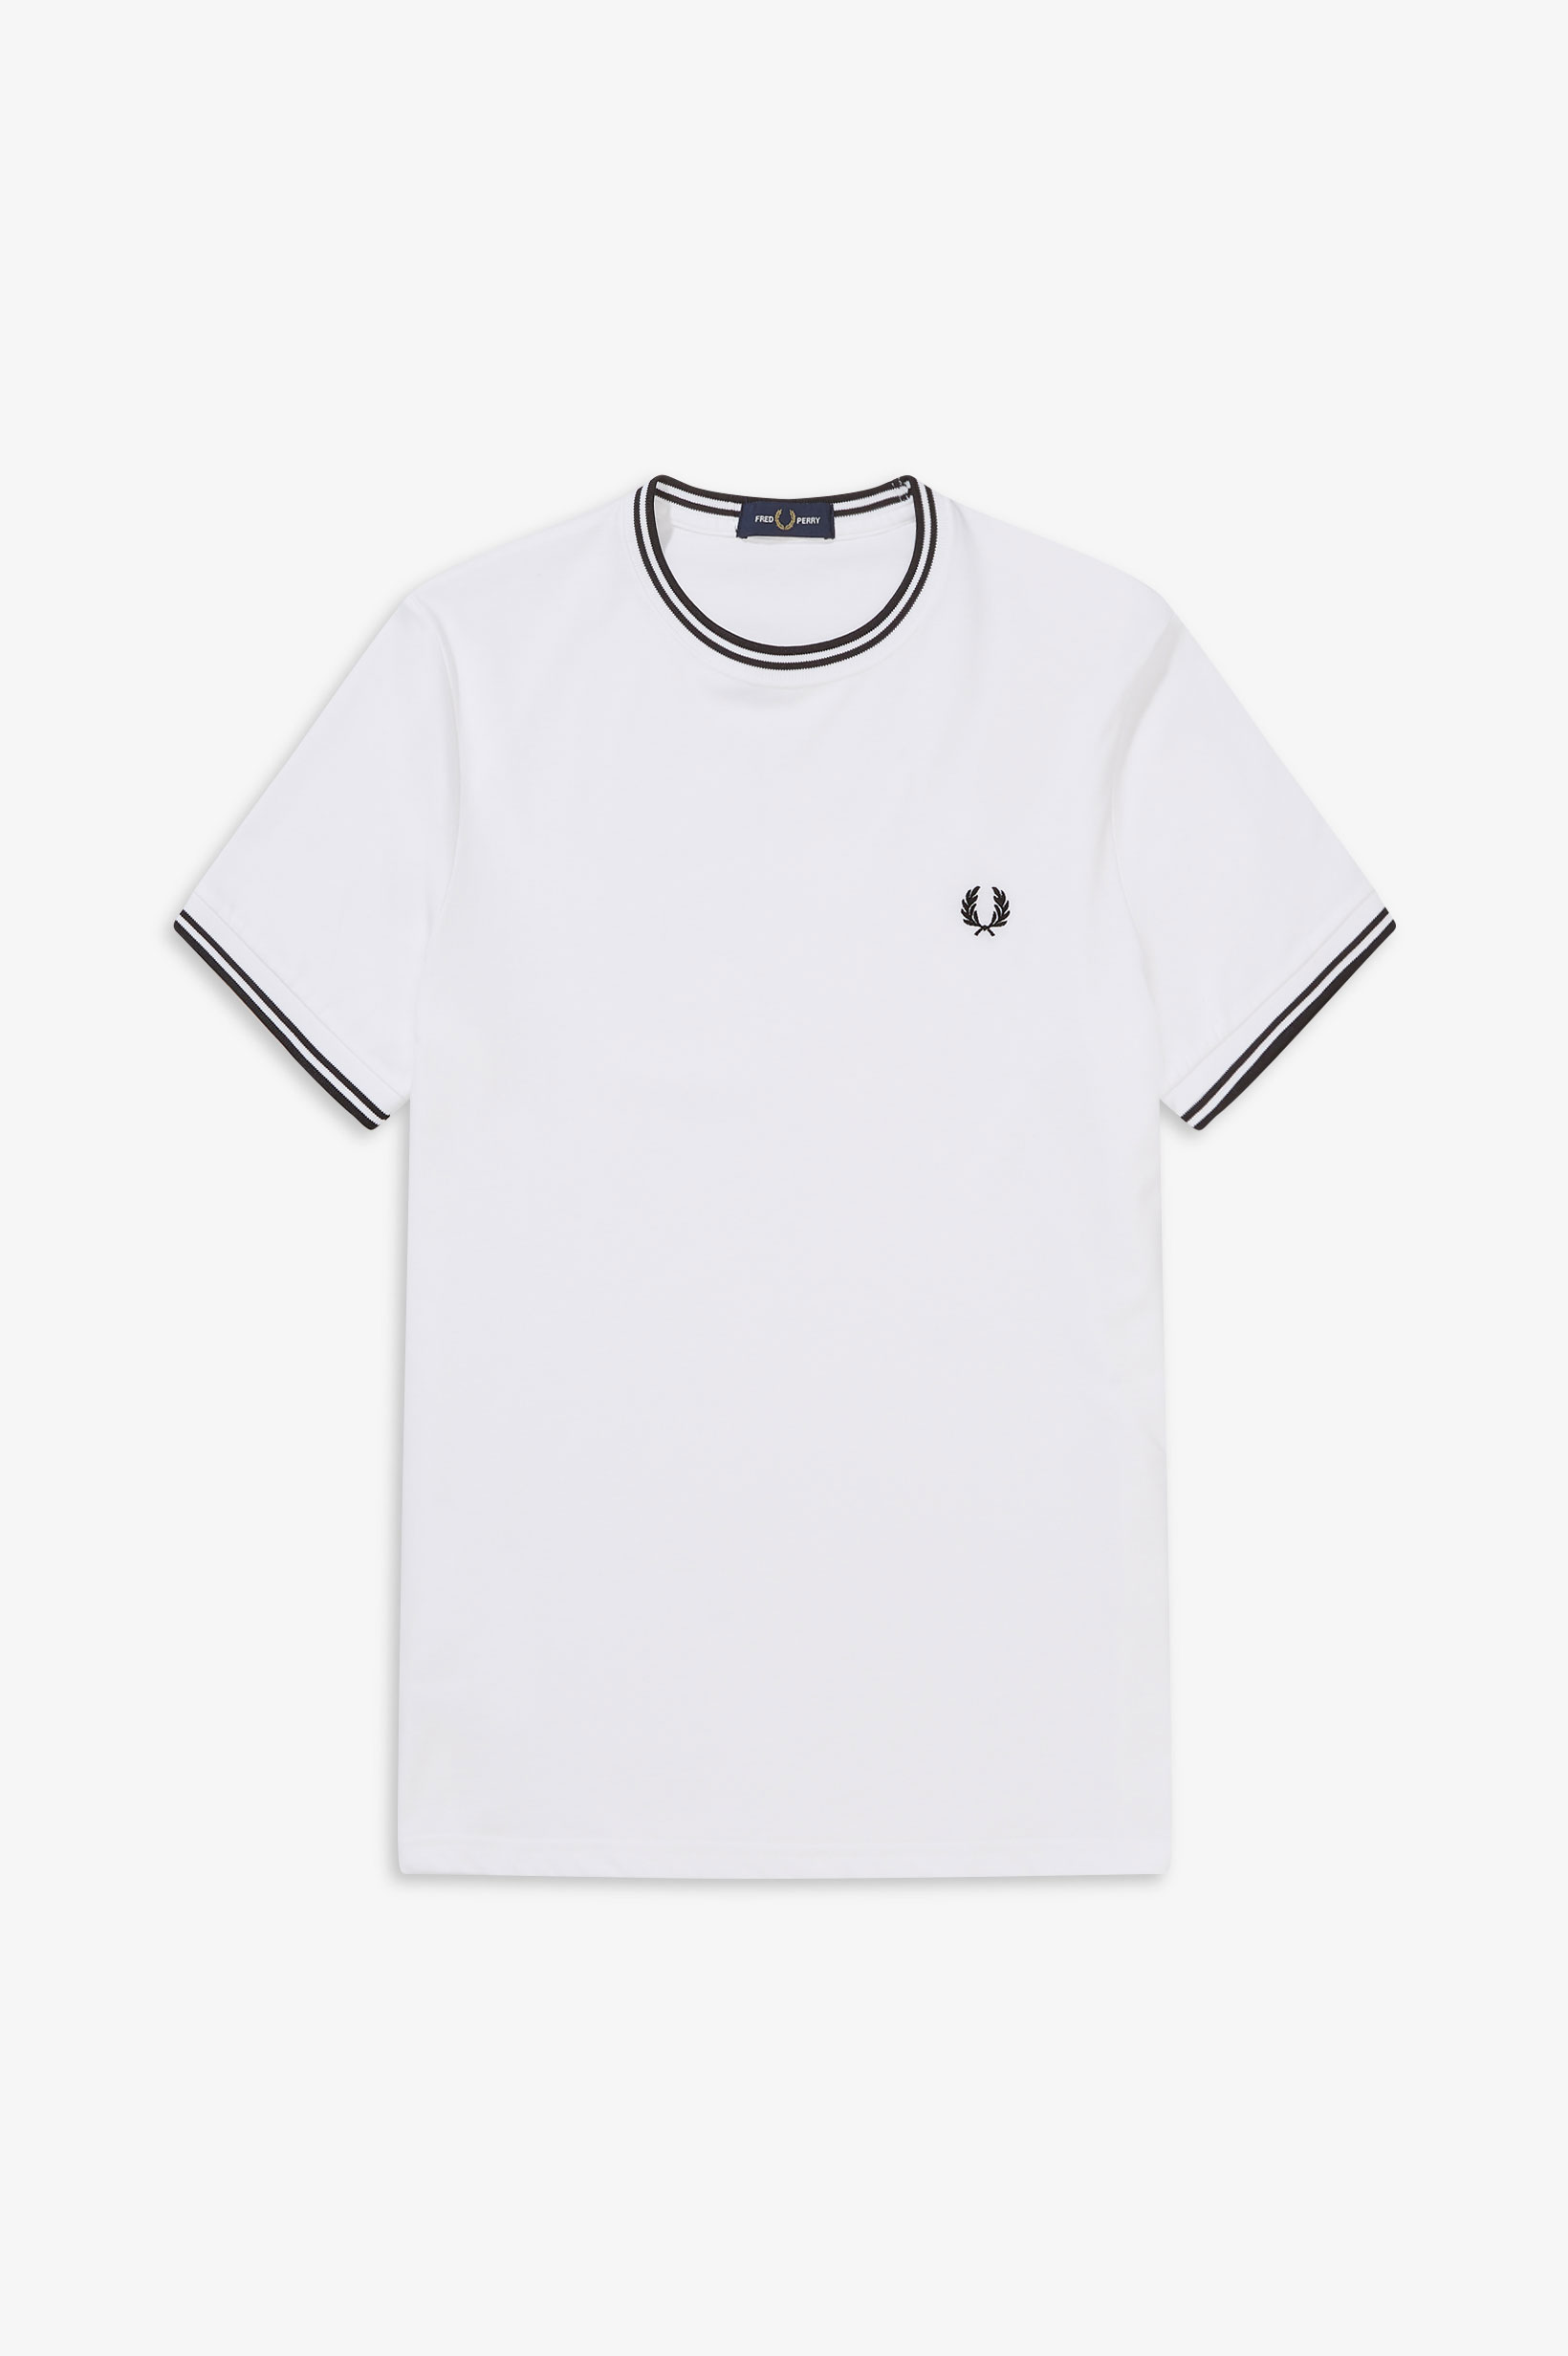 Fred Perry - TWIN TIPPED T-SHIRT - White